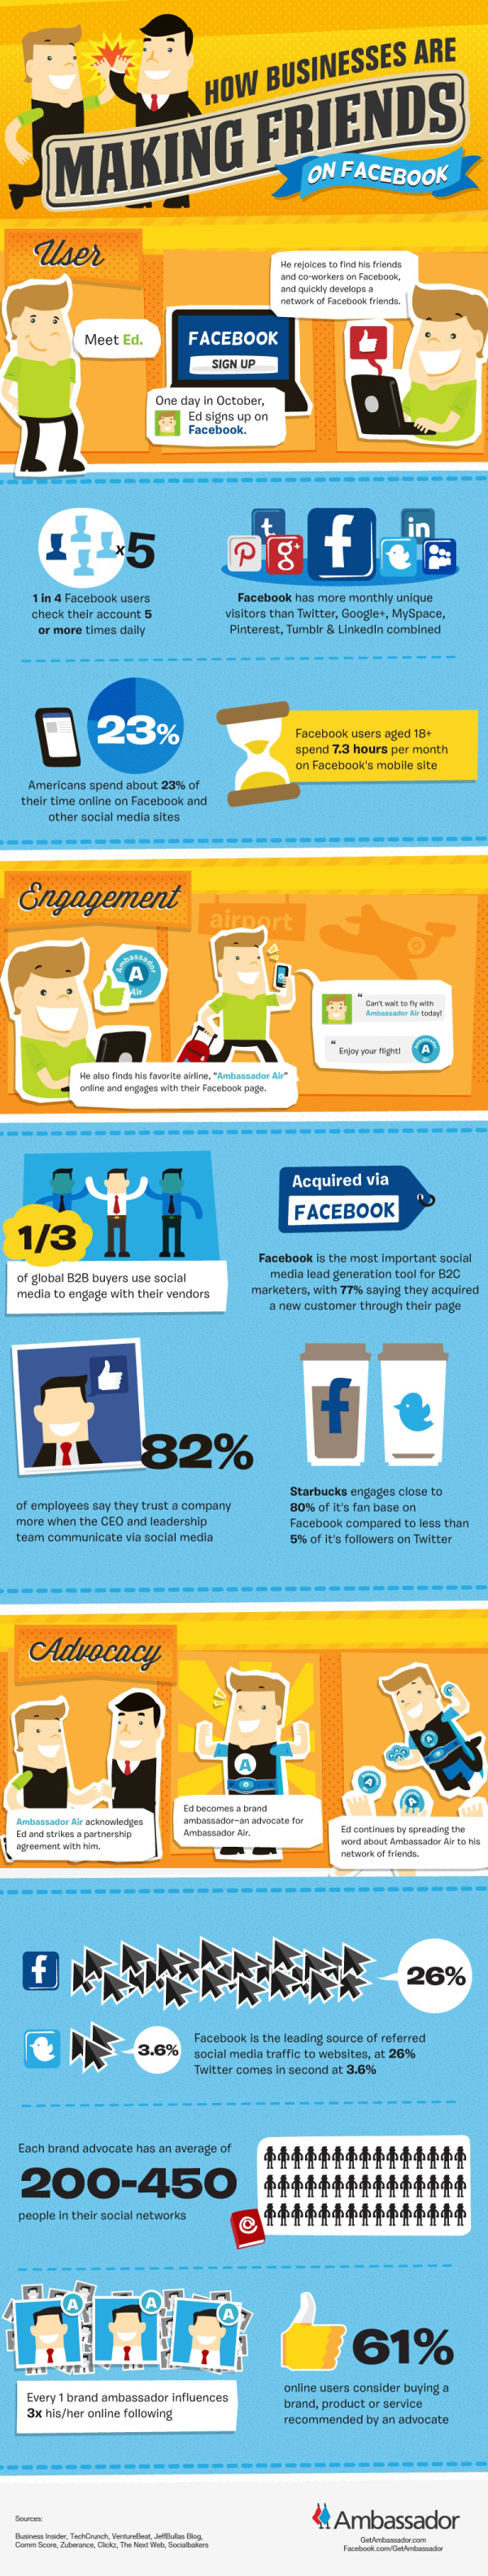 Word of Mouth Marketing on Facebook resized 600